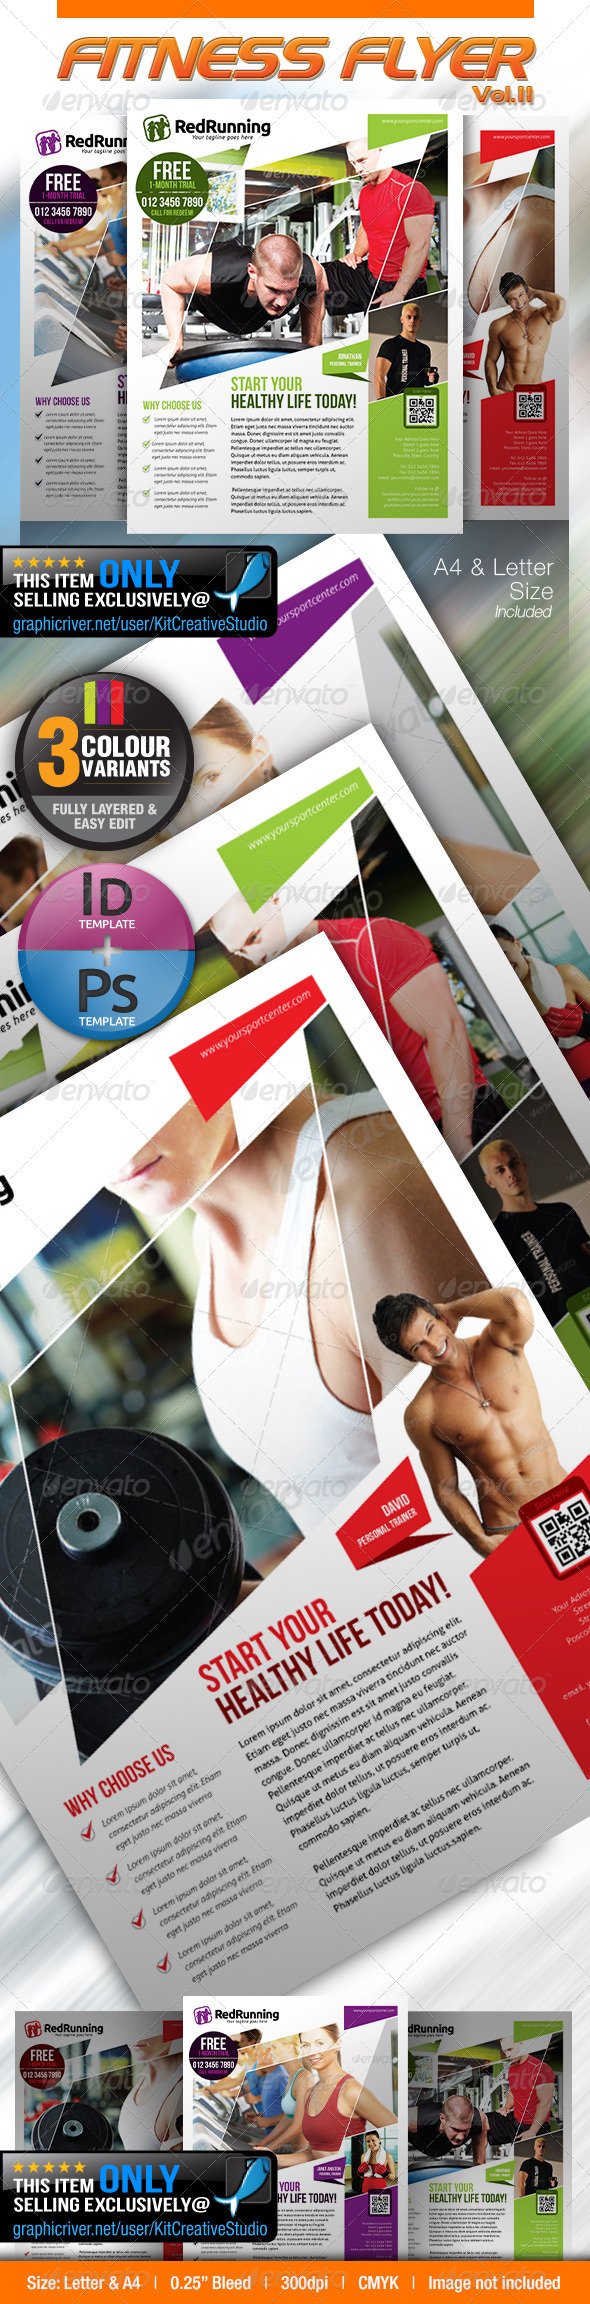 Fitness Flyer Vol.11 - Sports Events